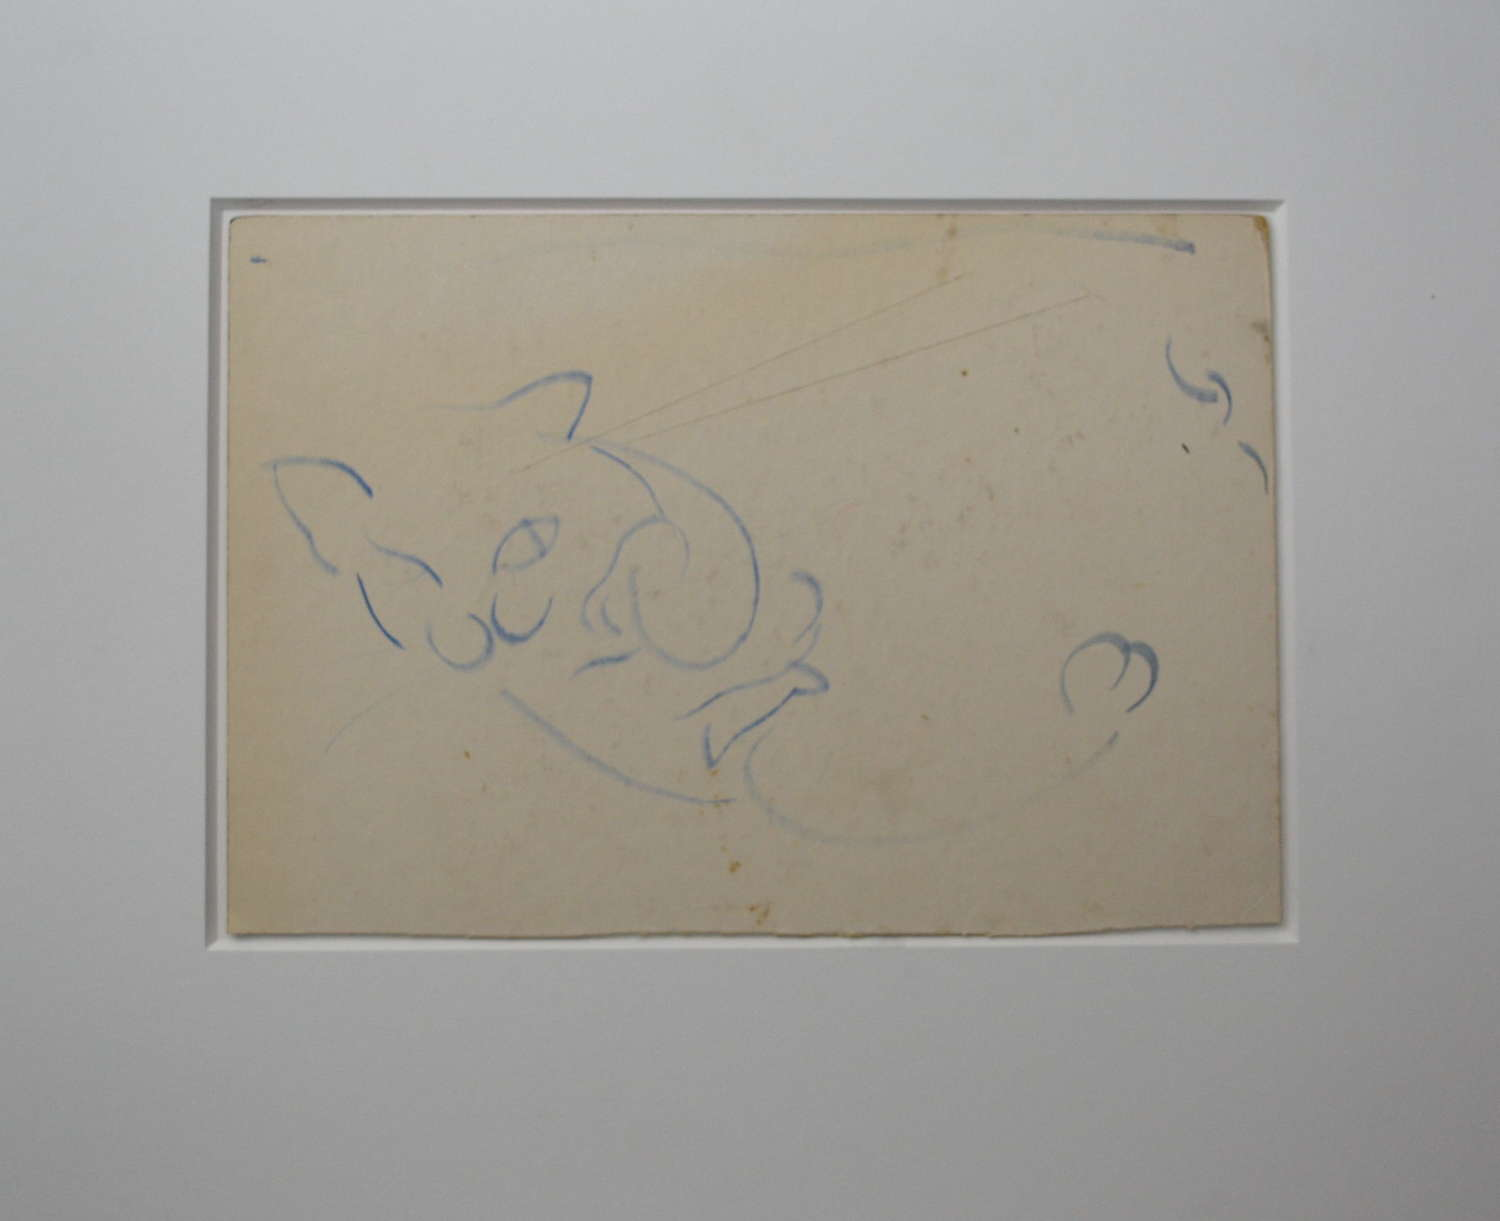 STUDY OF A CAT BY HYMAN SEGAL